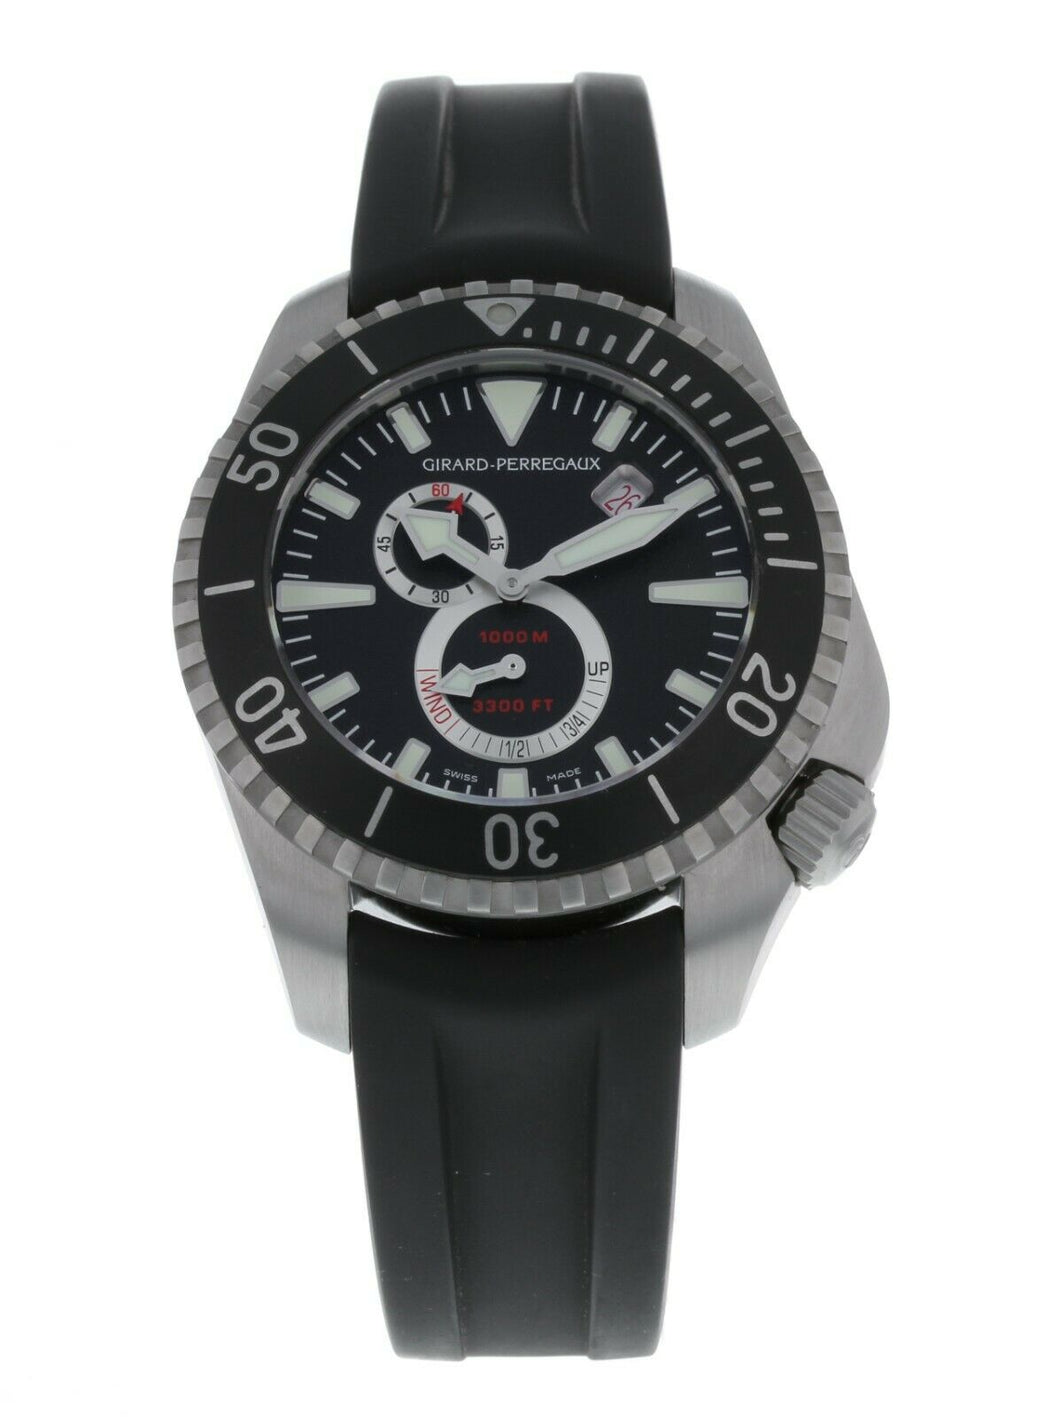 Girard Perregaux Sea Hawk Pro 1000m Men's 44mm Automatic Watch 49950-19-632-FK6A